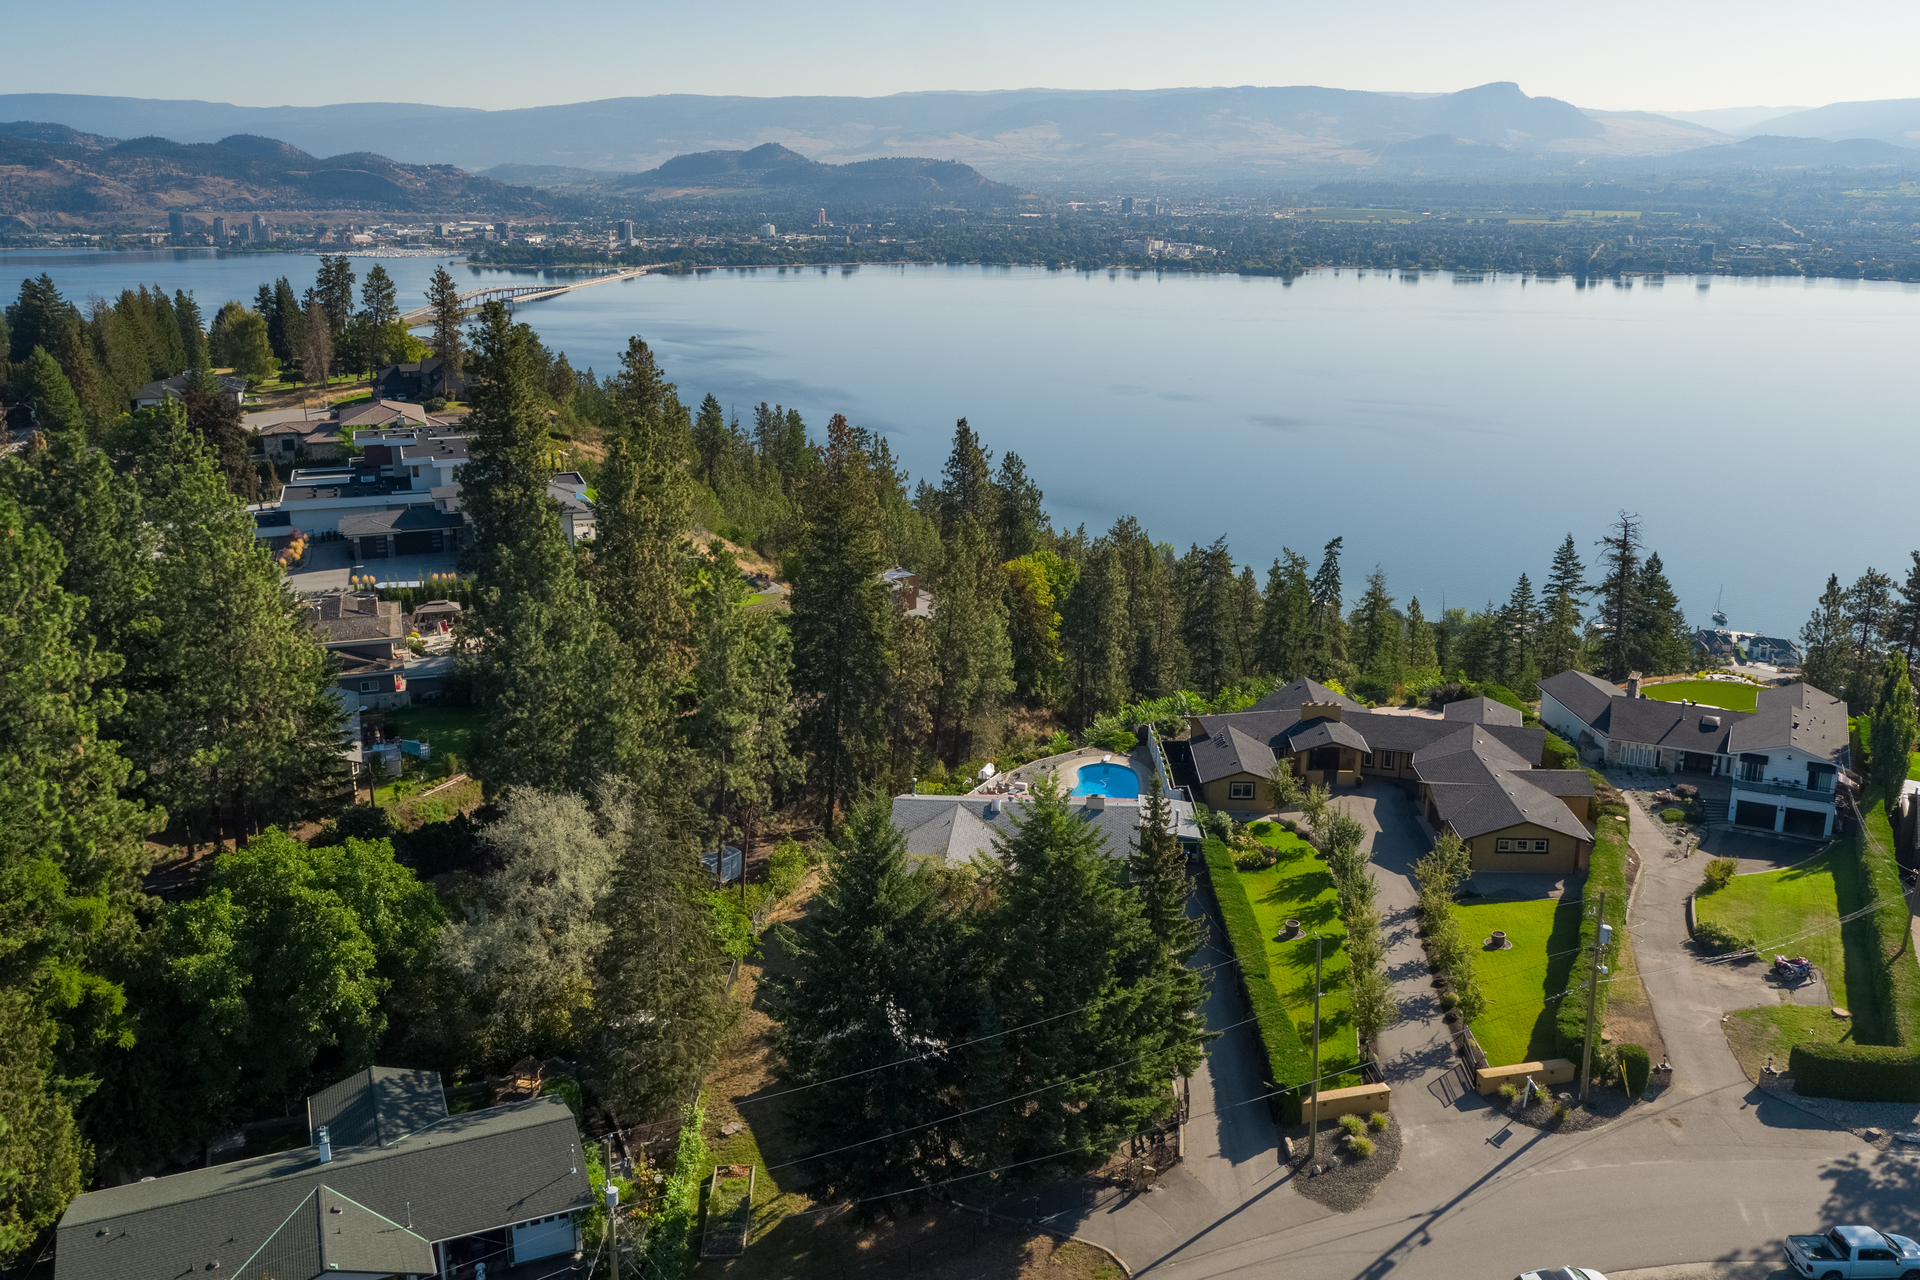 dji_0010-edit at 2511 Hillsborough Road, West Kelowna, Central Okanagan